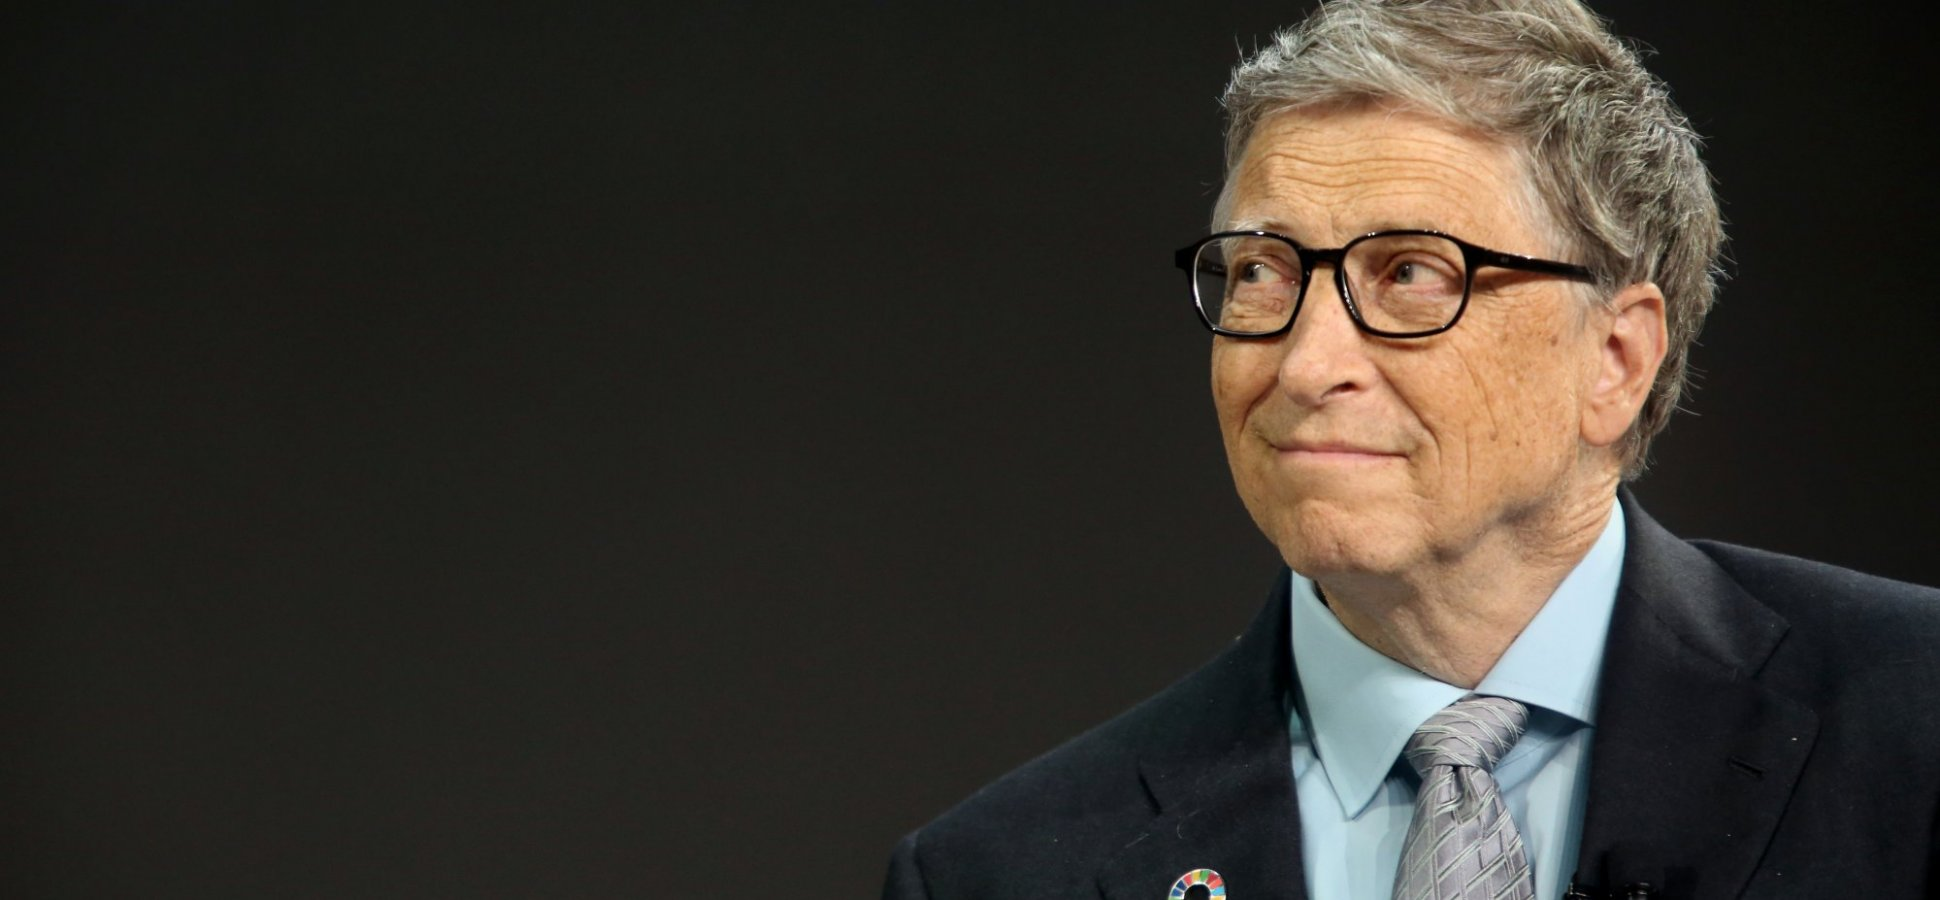 Bill Gates: Every American Who Lives a Comfortable Life Should Read This Book